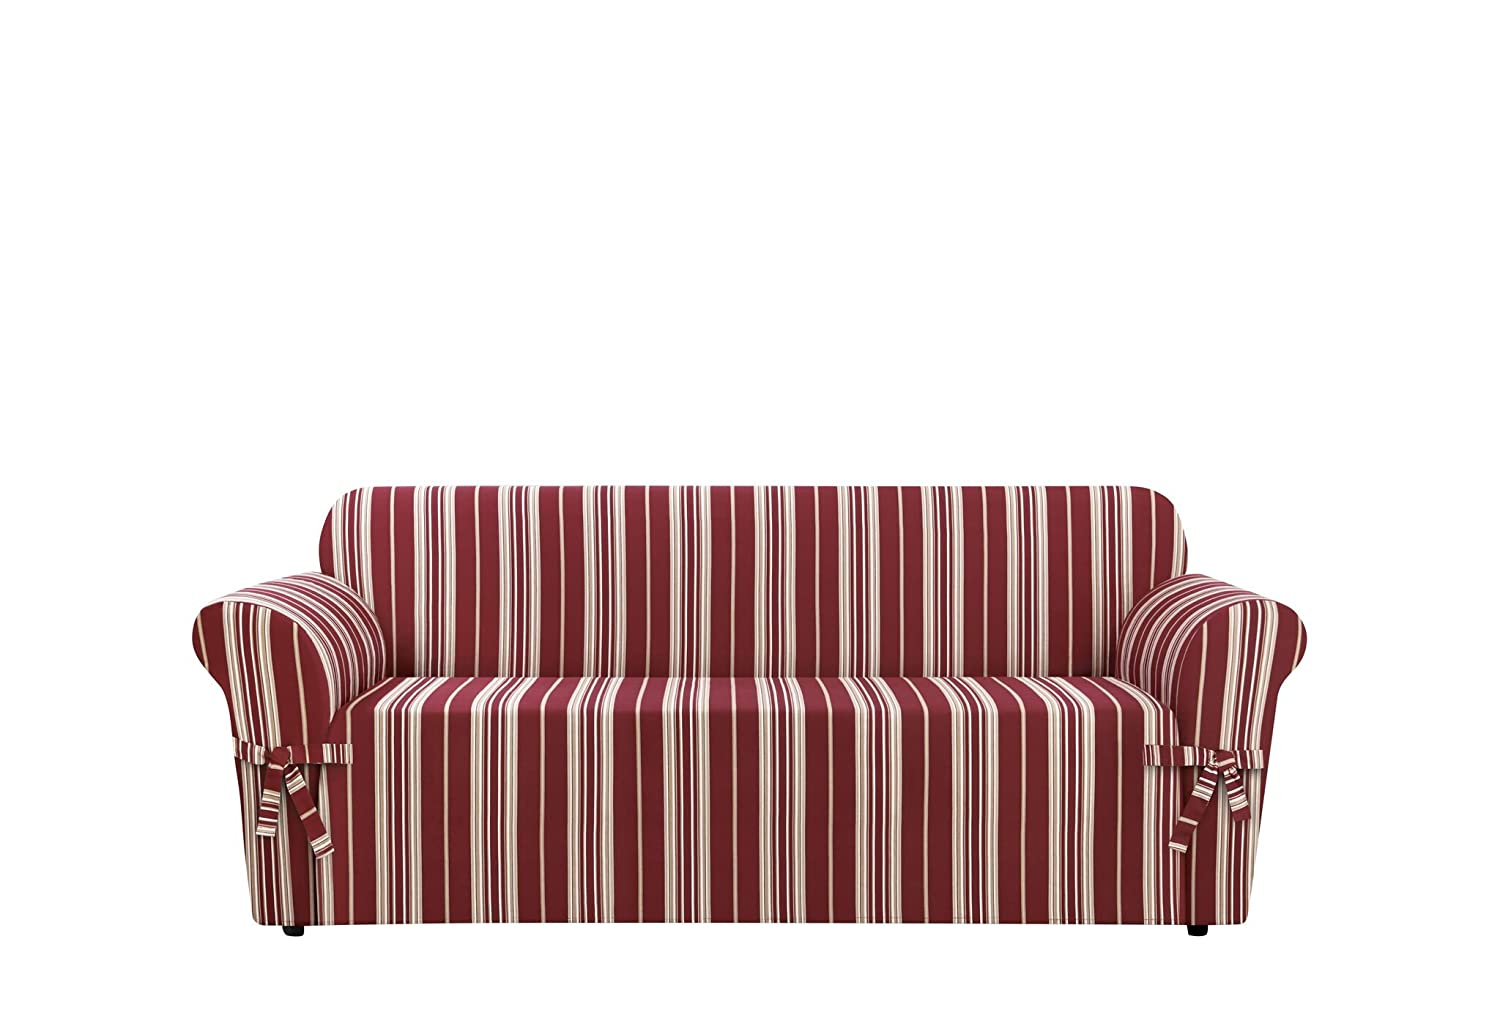 Sure Fit SF37922 Stripe Sofa Slipcover, Multicolored Sure Fit Inc.